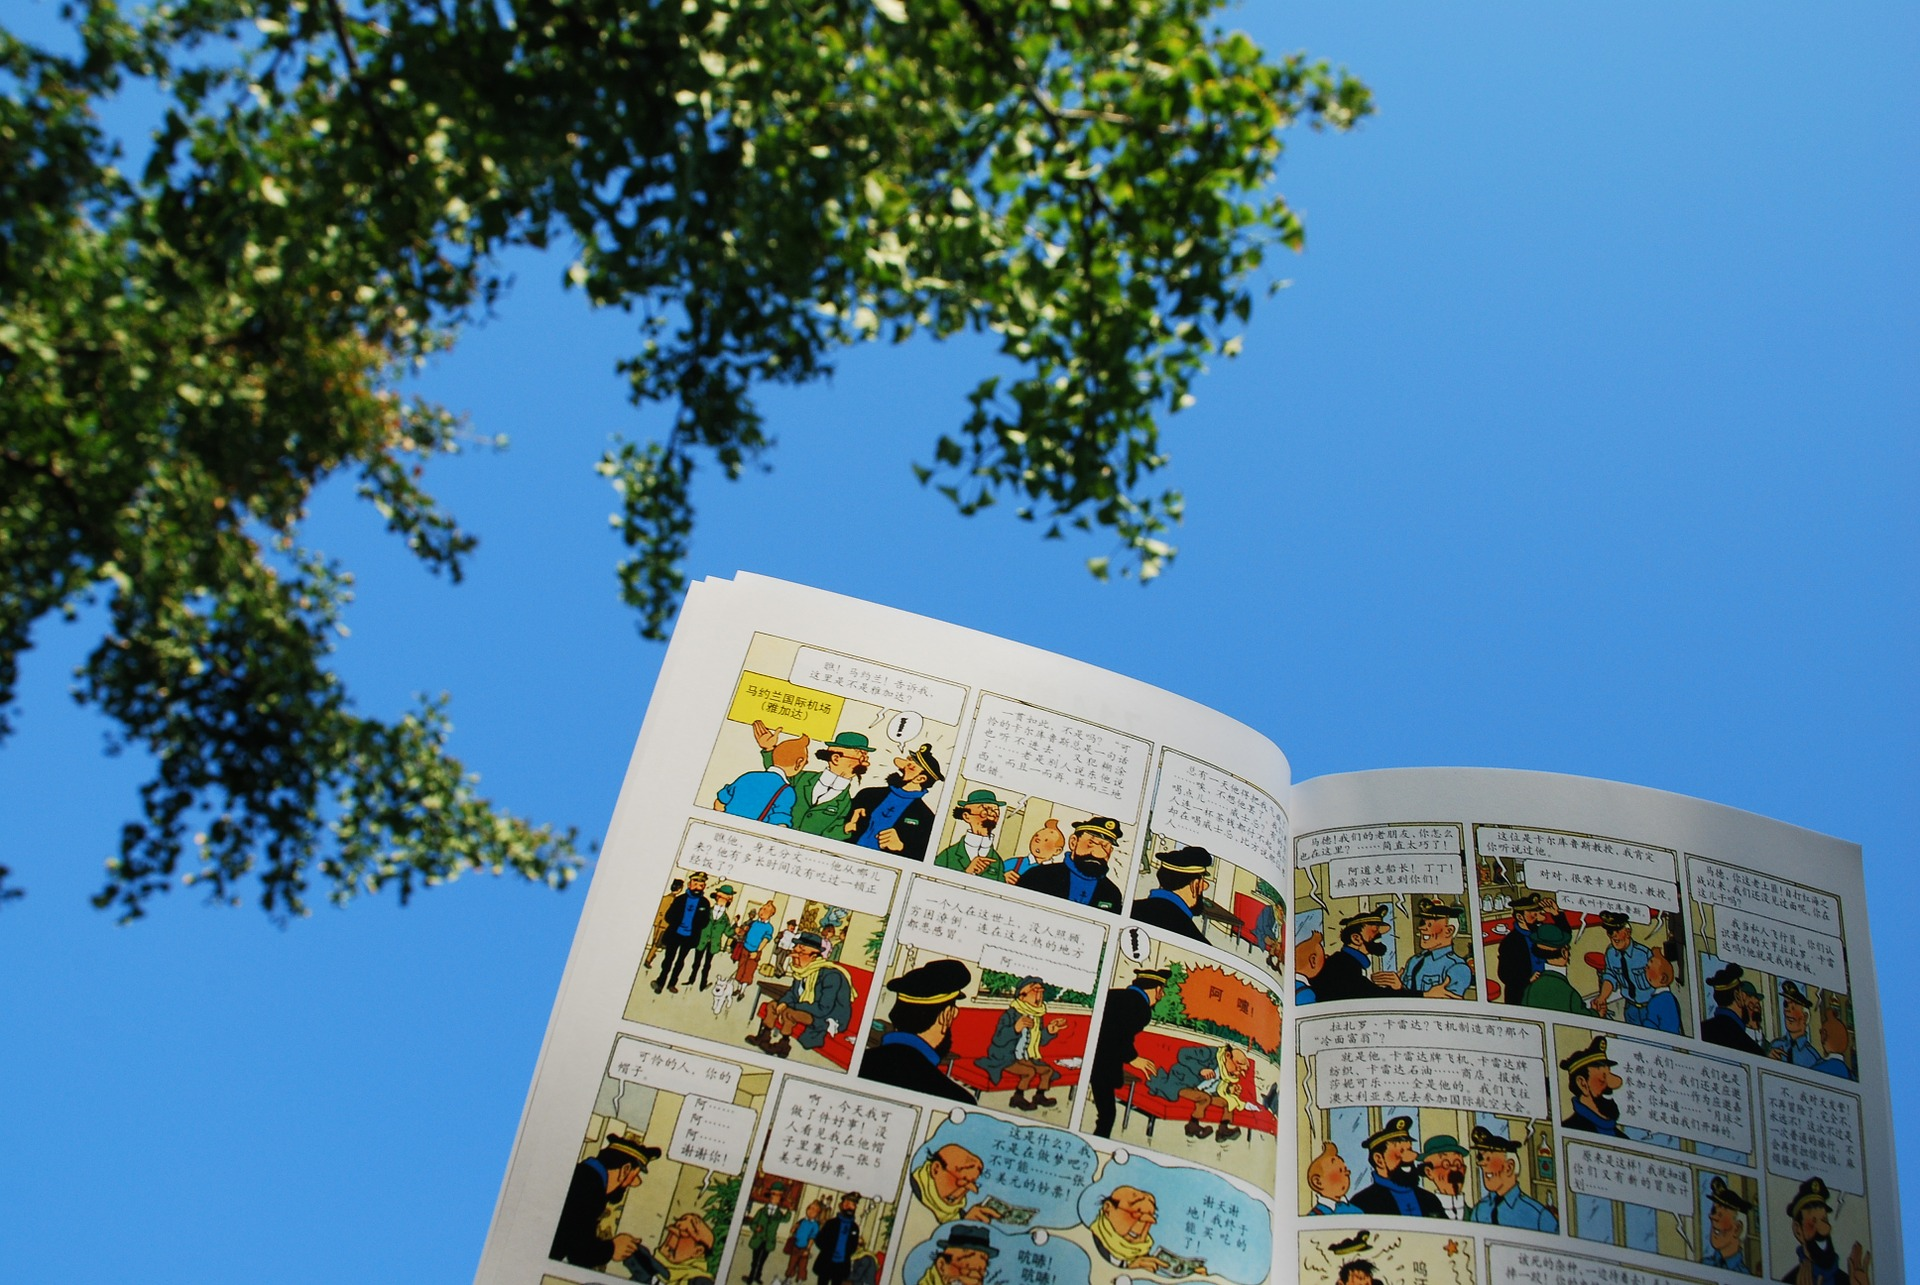 A day in Brussles, Following Tintin